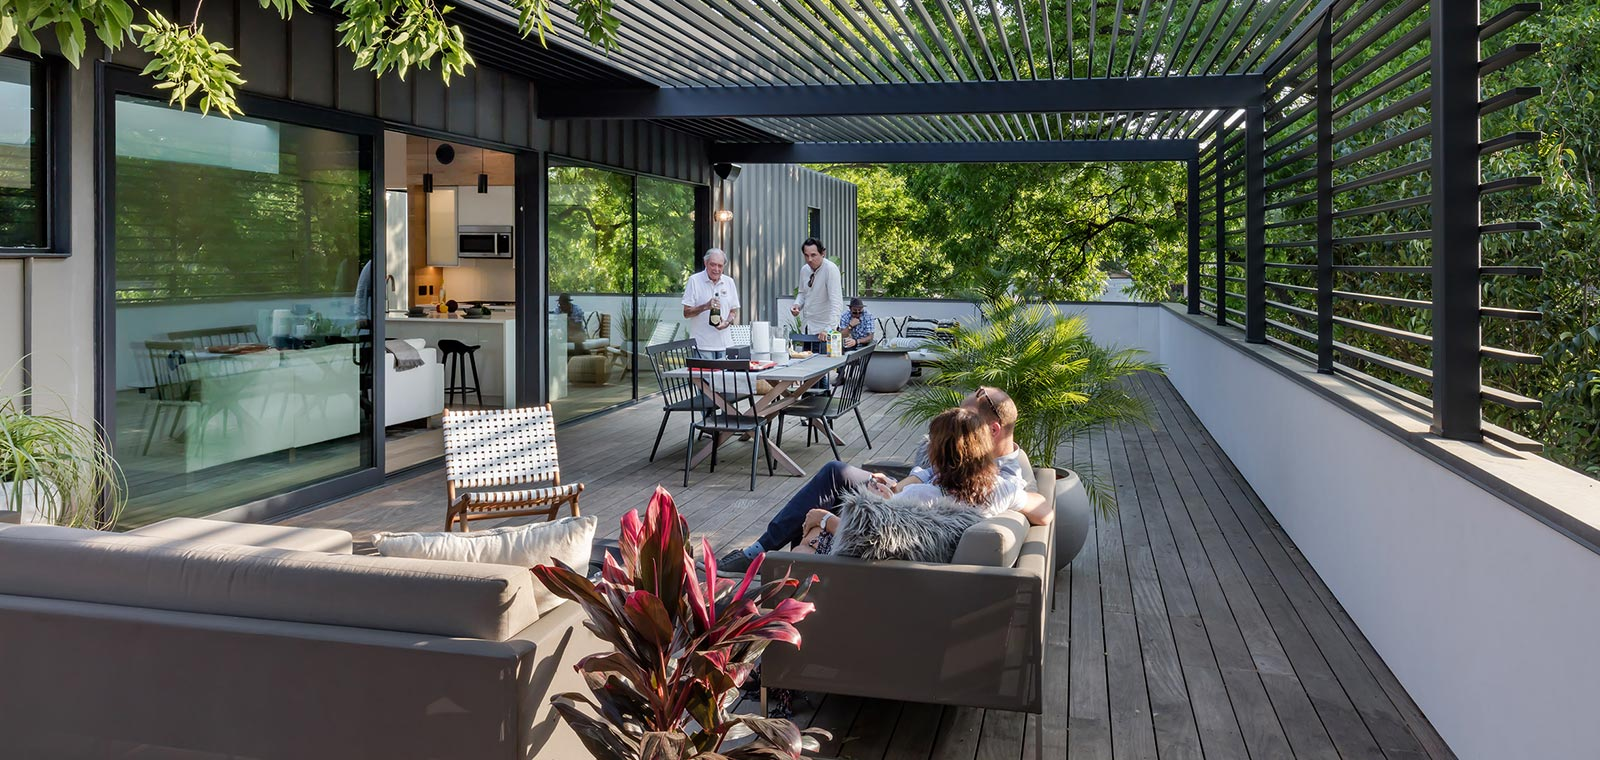 Unconventional residence in Austin, Texas designed by Matt Fajkus Architecture - outdoor area